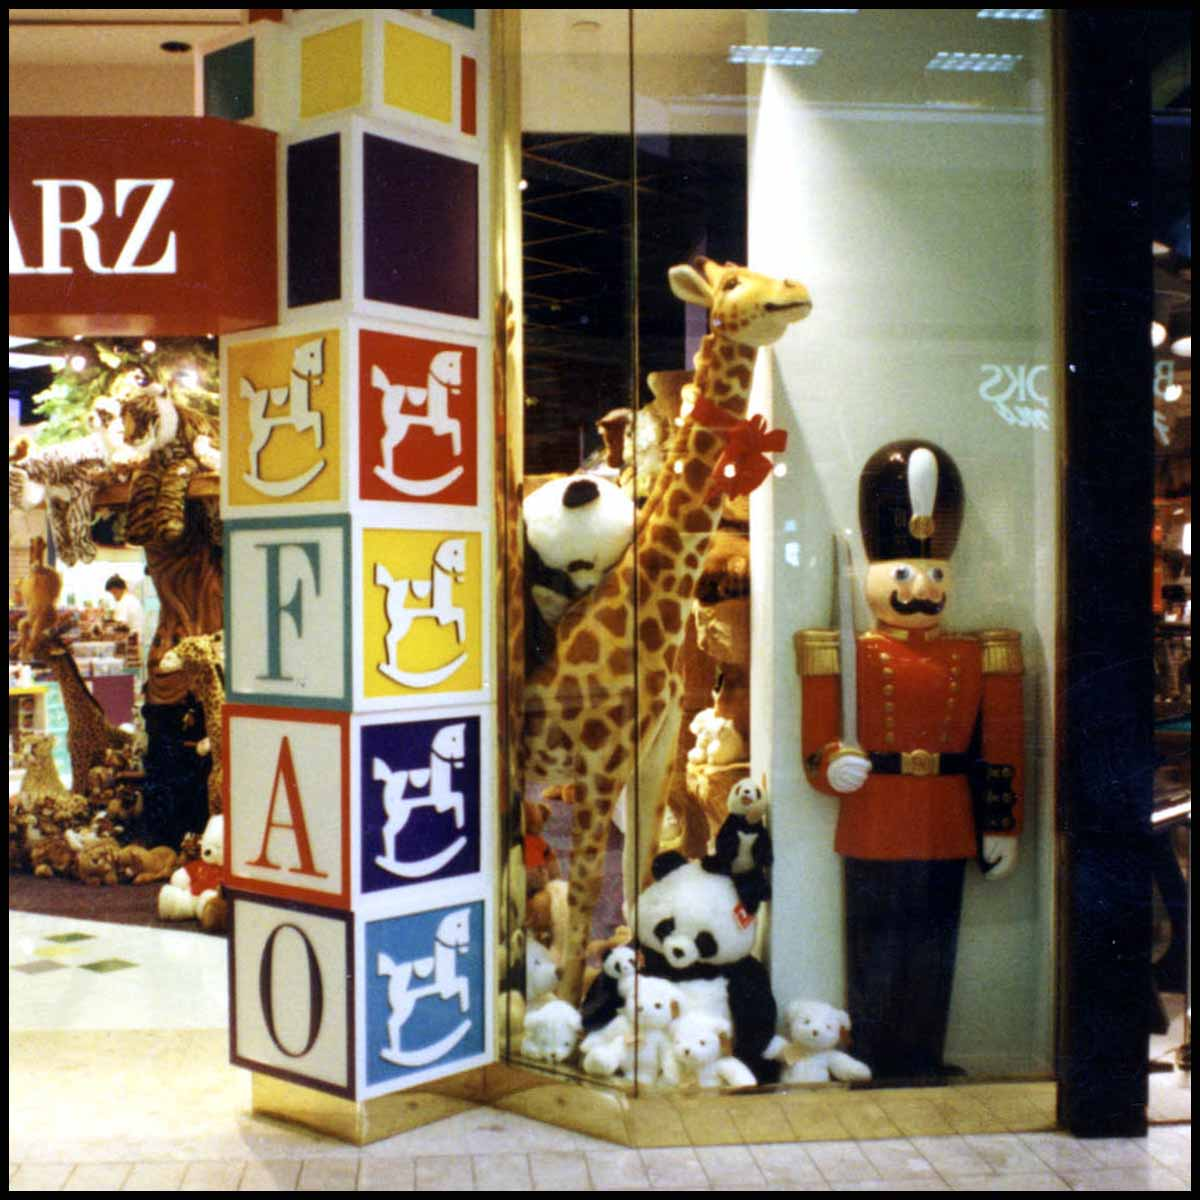 photo of FAO Schwarz toy store front window with logo tower of blocks, stuffed animals, and polychromed toy soldier sculpture